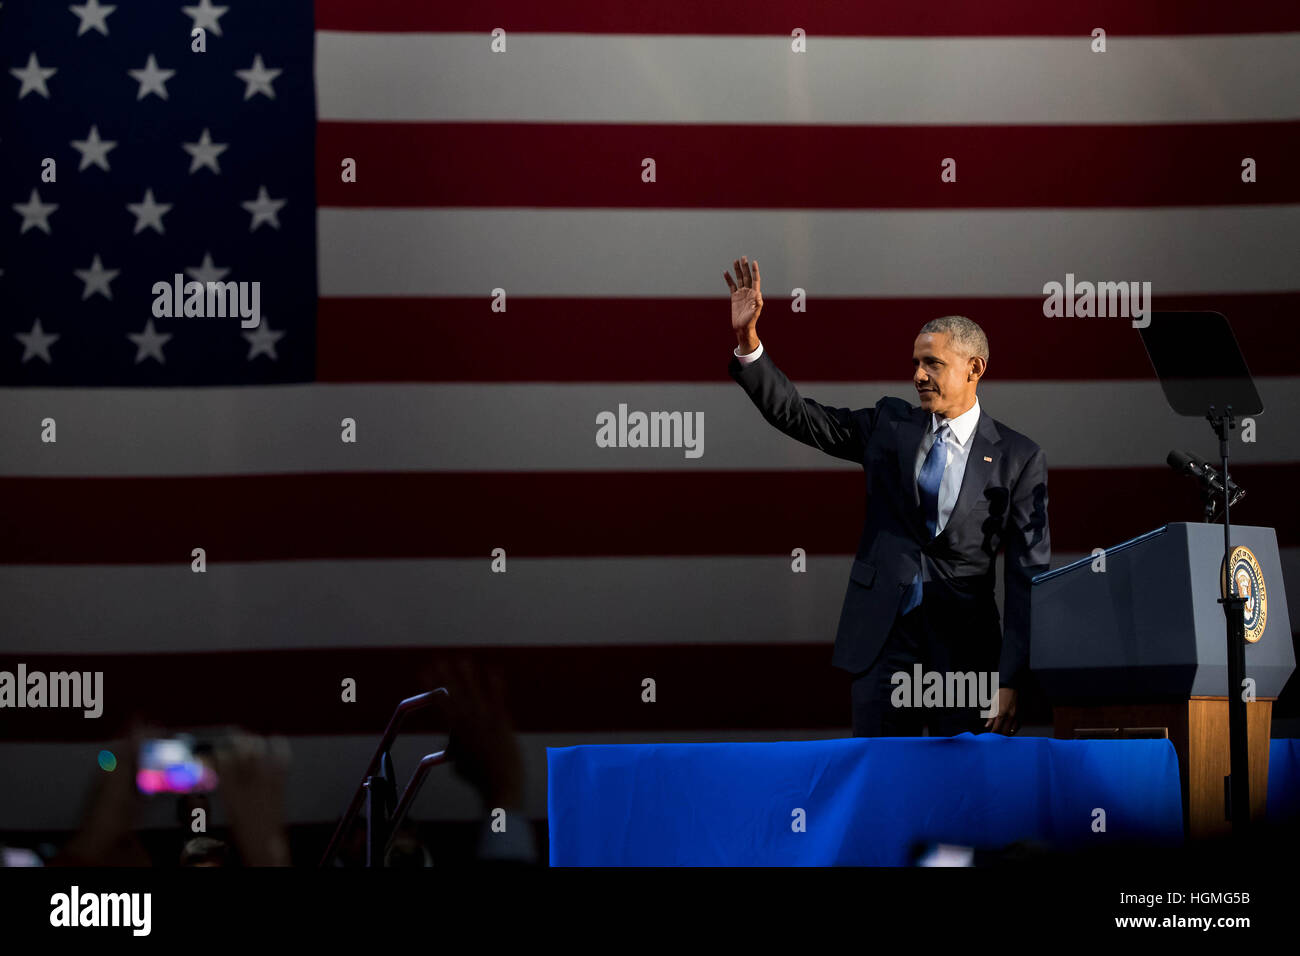 Chicago, USA. 10th Jan, 2017. U.S. President Barack Obama waves to the audience before delivering his farewell address - Stock Image